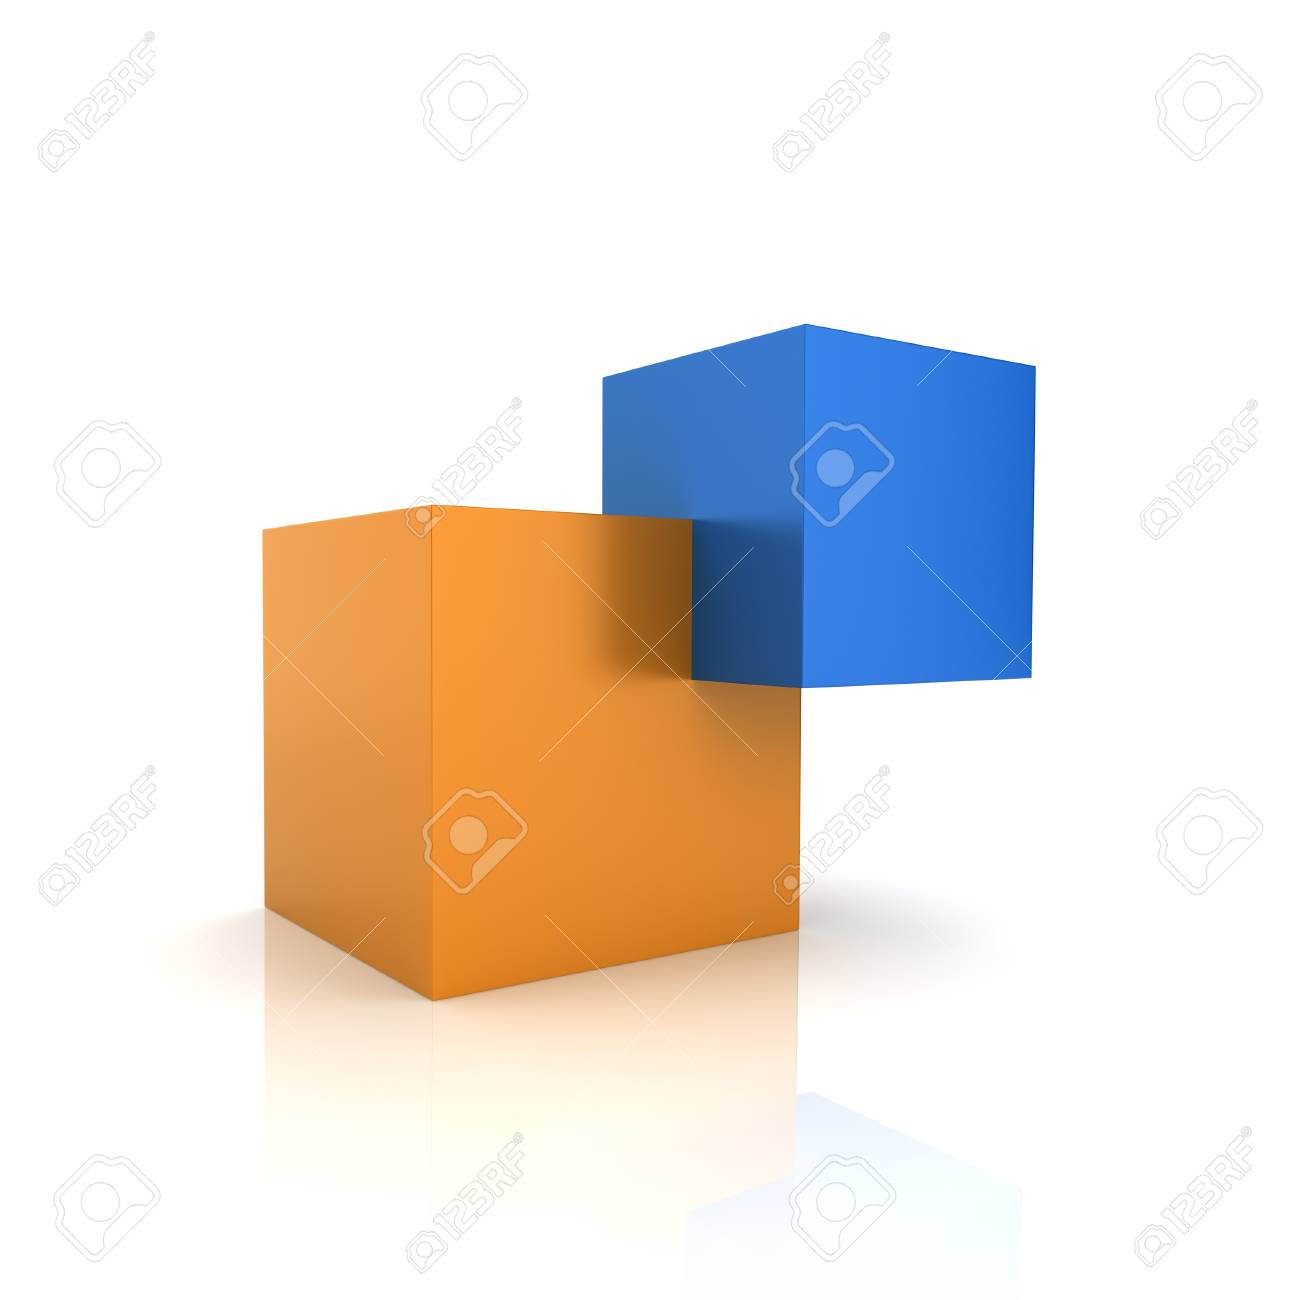 Concept of unity with two cubes (color collection)